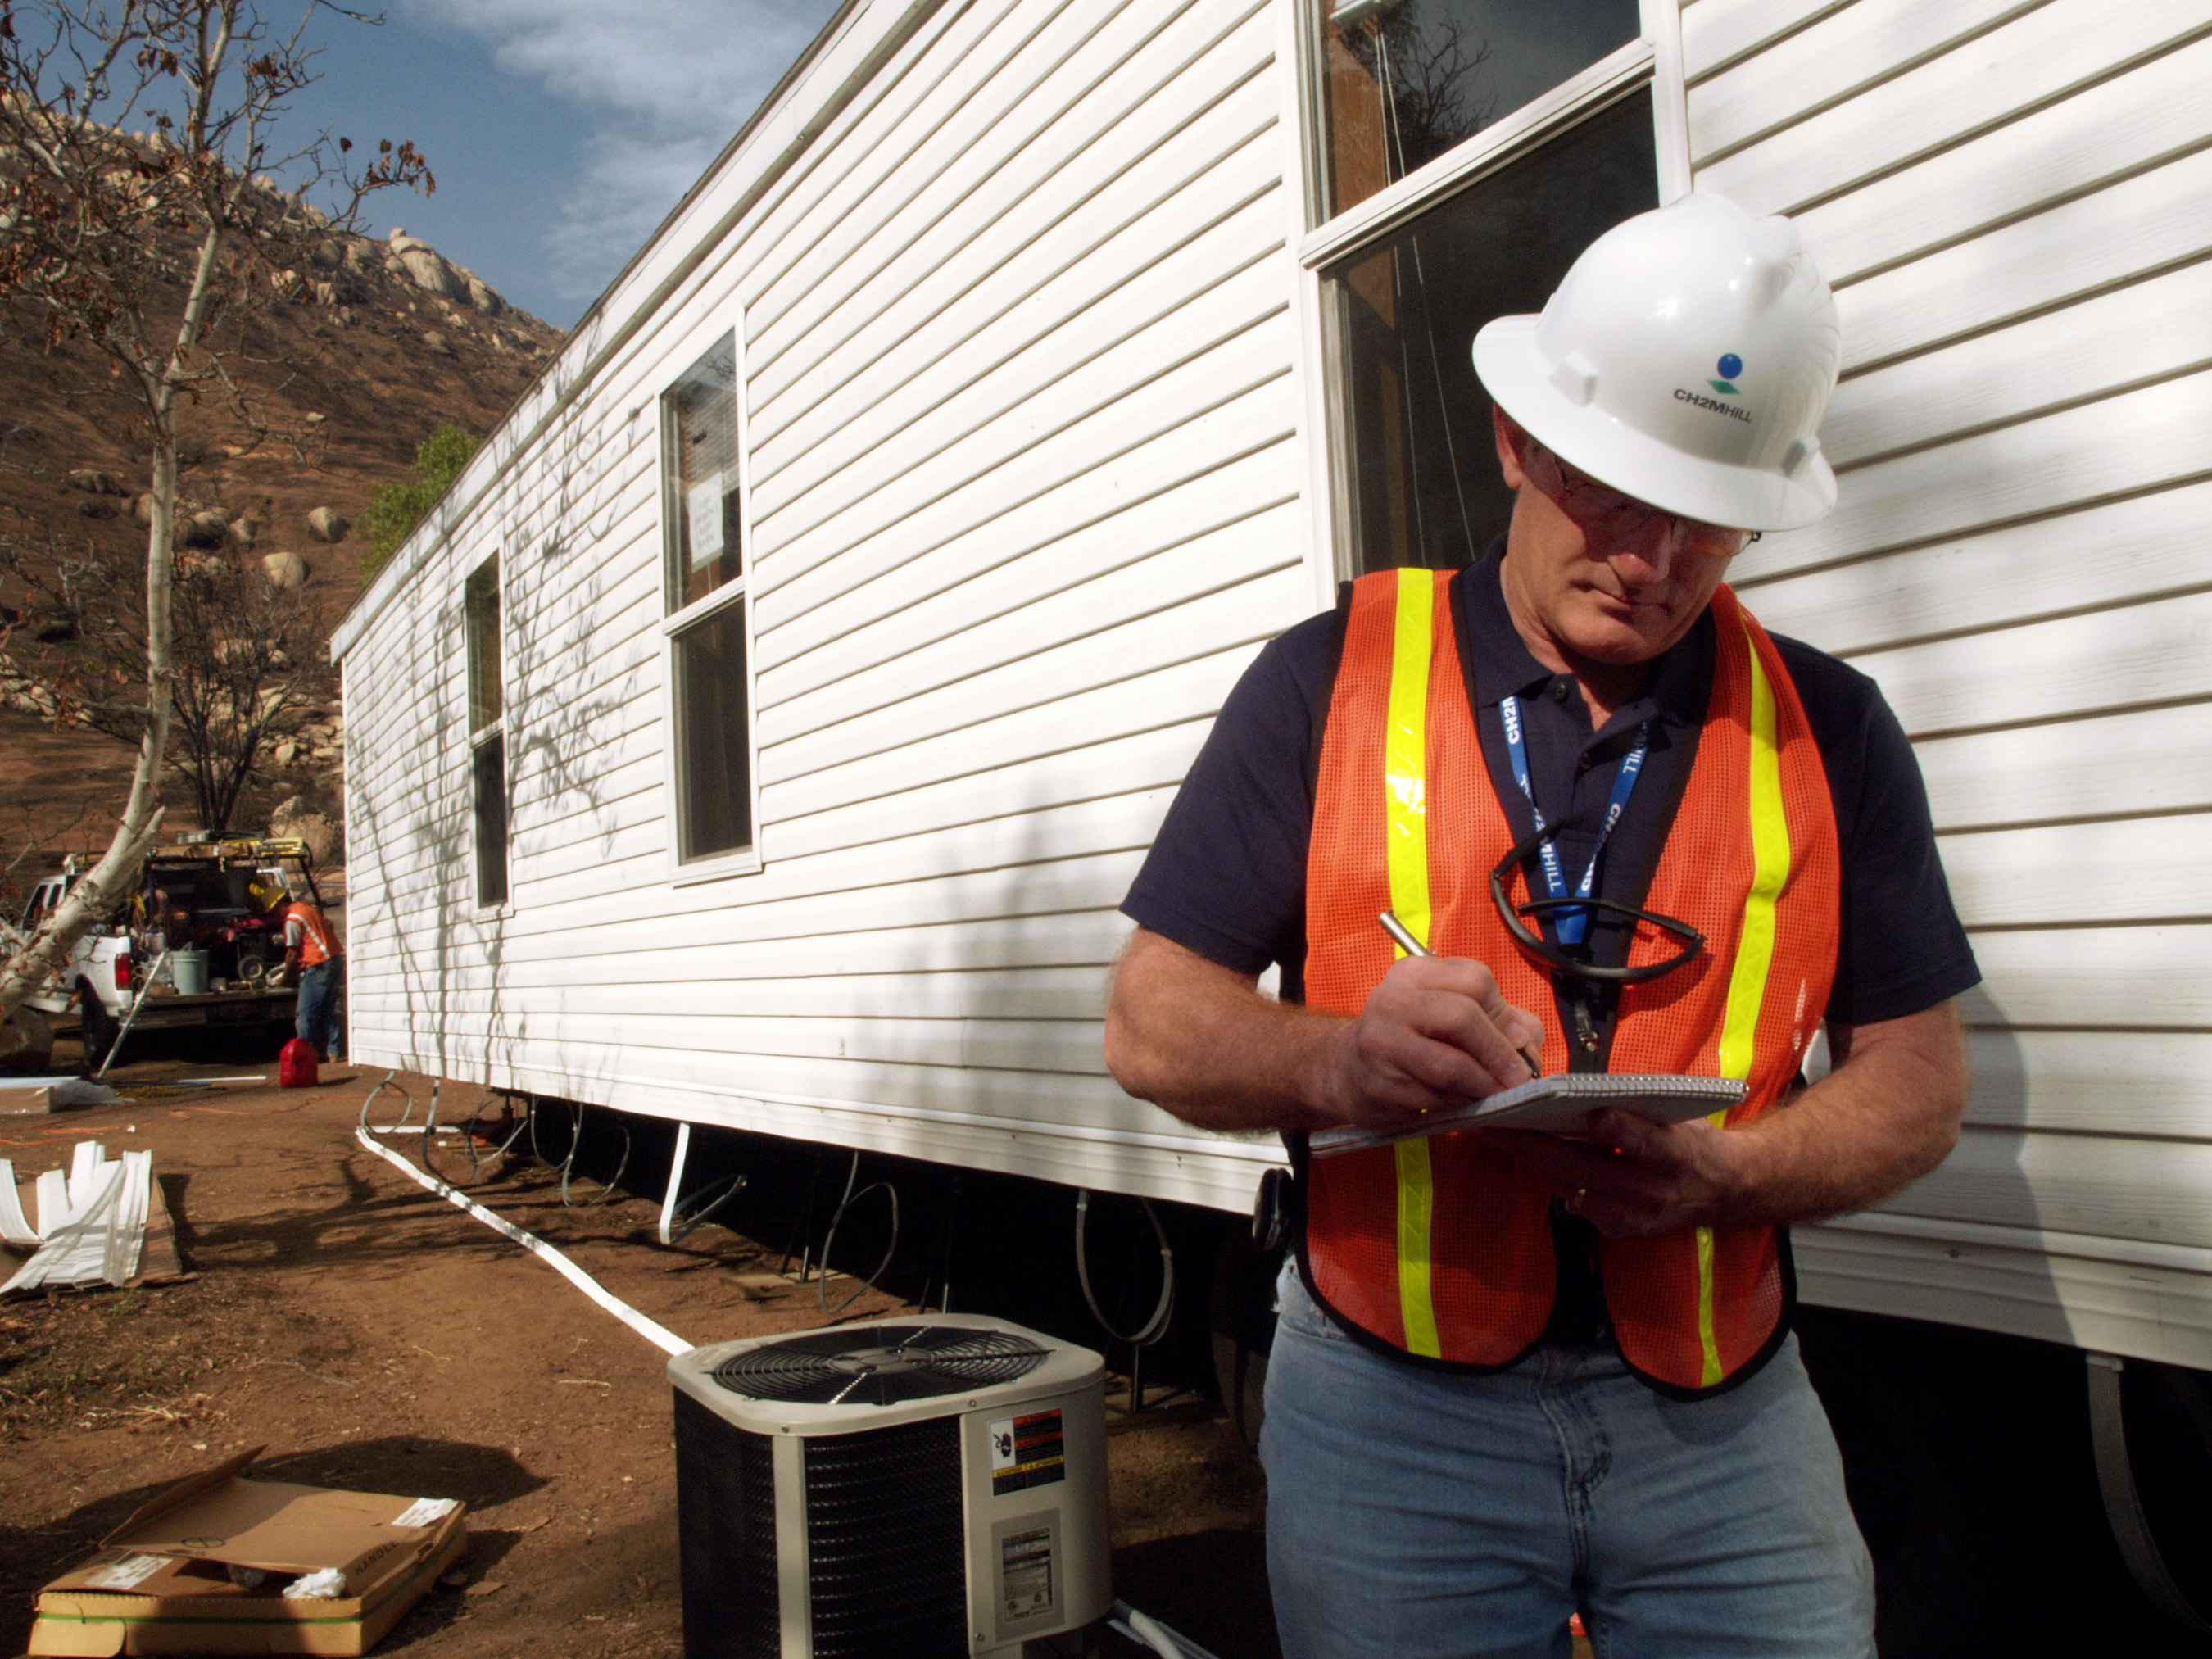 Image features a white man wearing a hard hat with construction vest. holding a clip board infront of a mobile home. Professional home inspectors check for major issues with residential homes